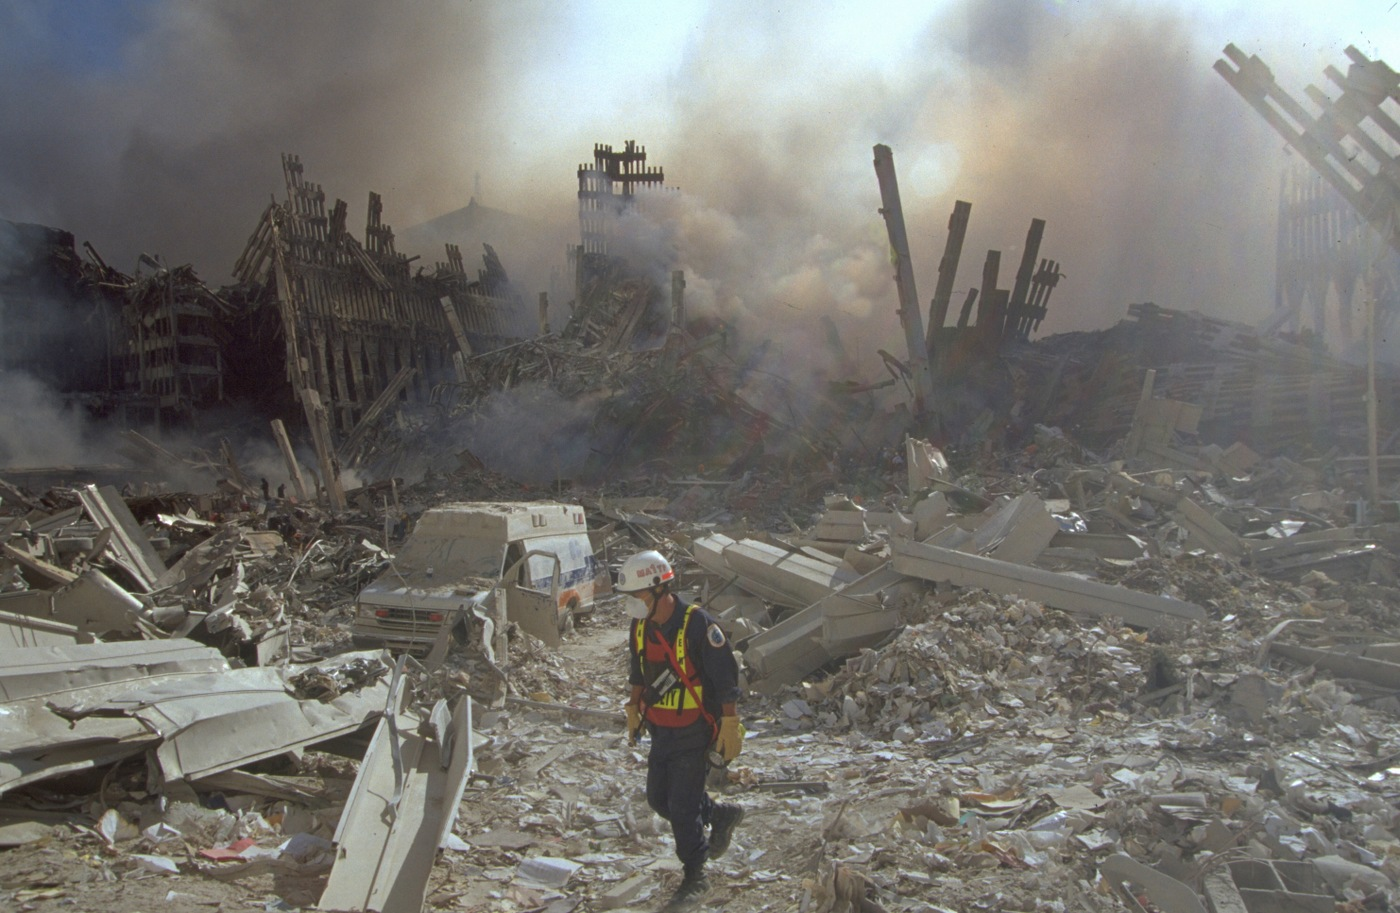 An emergency worker walks amid the rubble of the World Trade Center in Manhattan after the September 11, 2001, attacks.